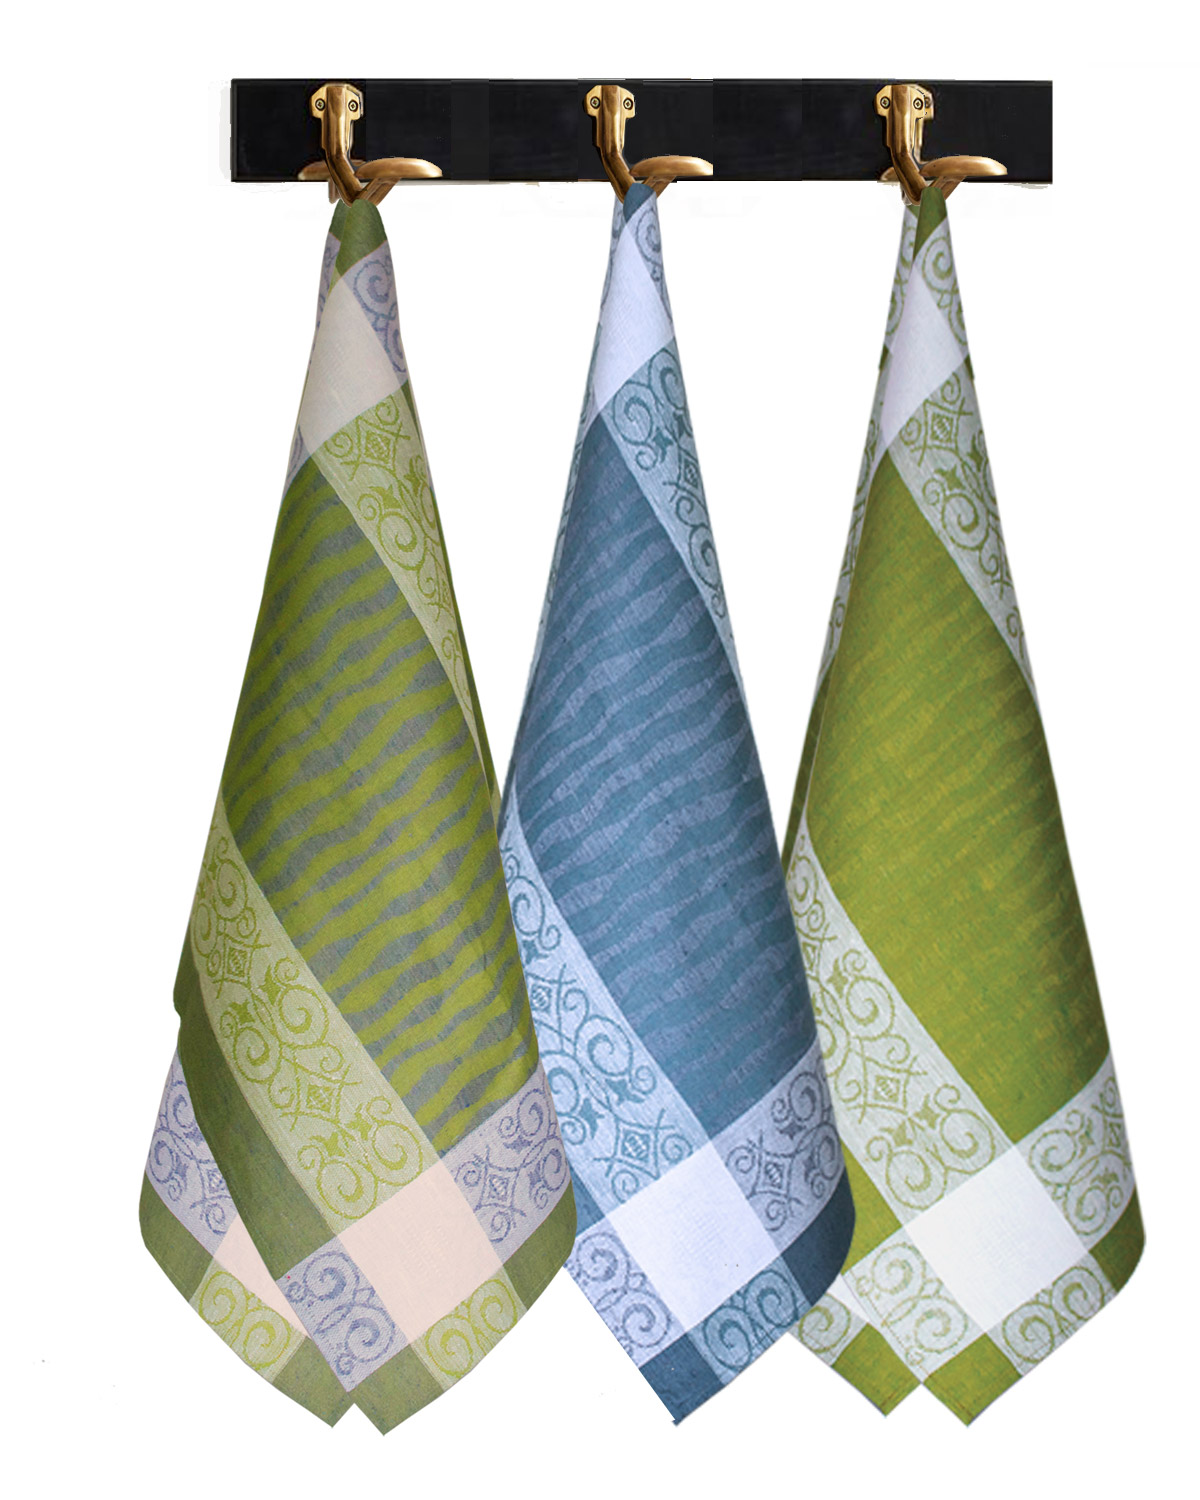 Dish Towel Linen Cotton, Manifica Collection